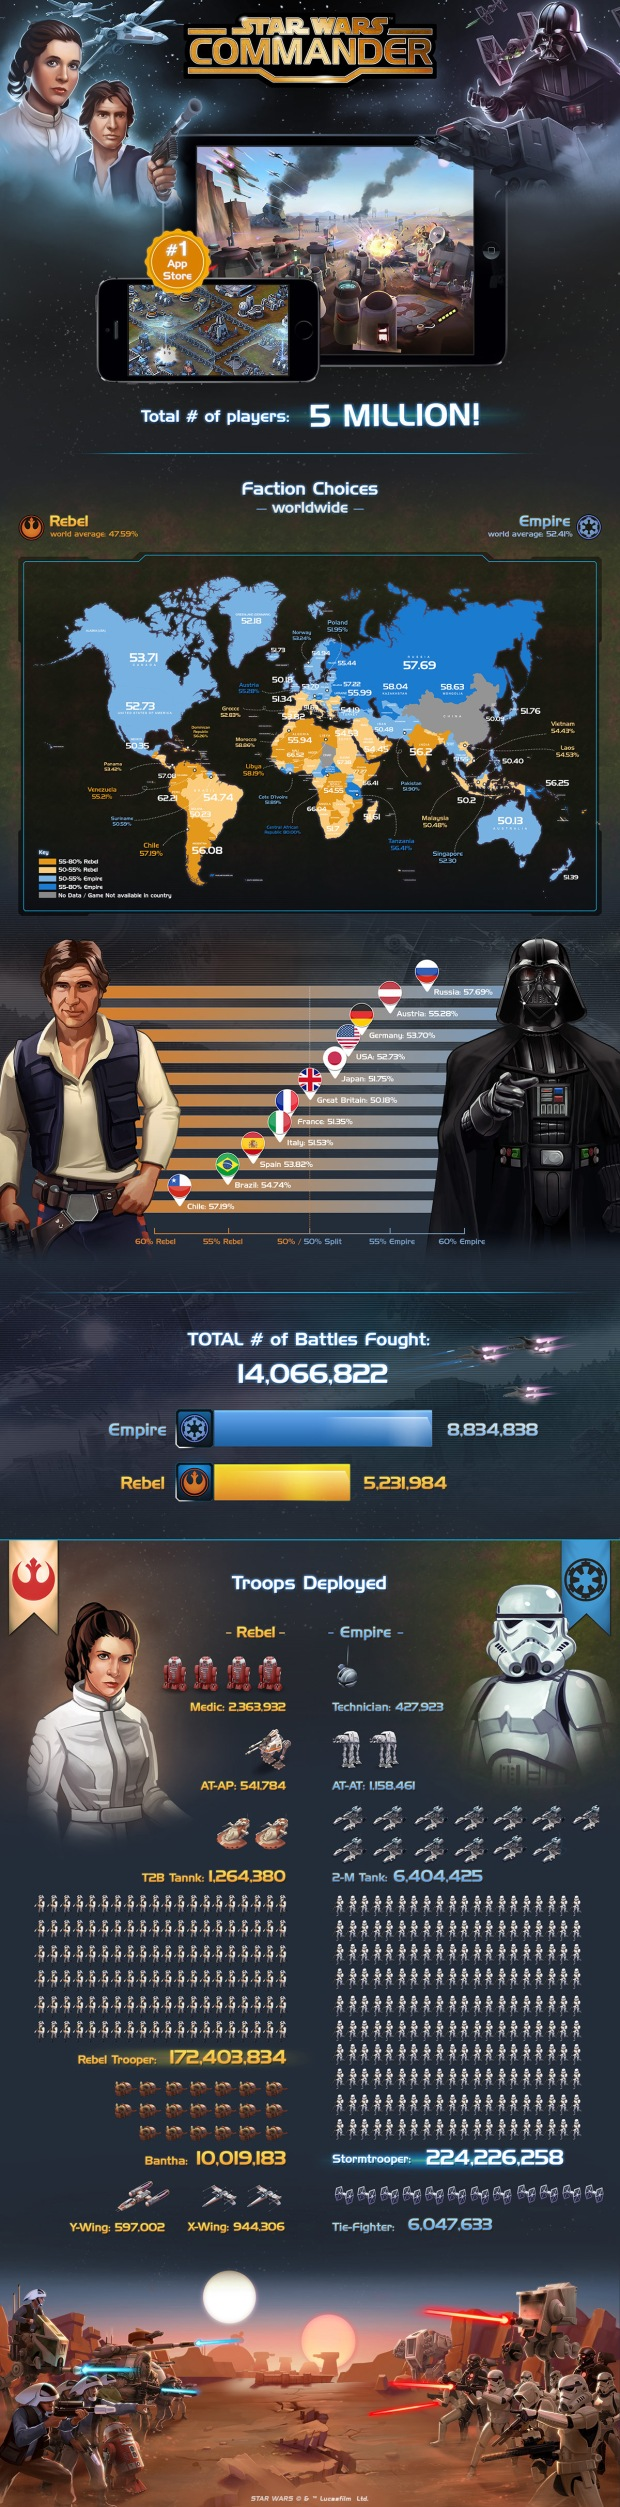 Star-Wars-Commander-infographic